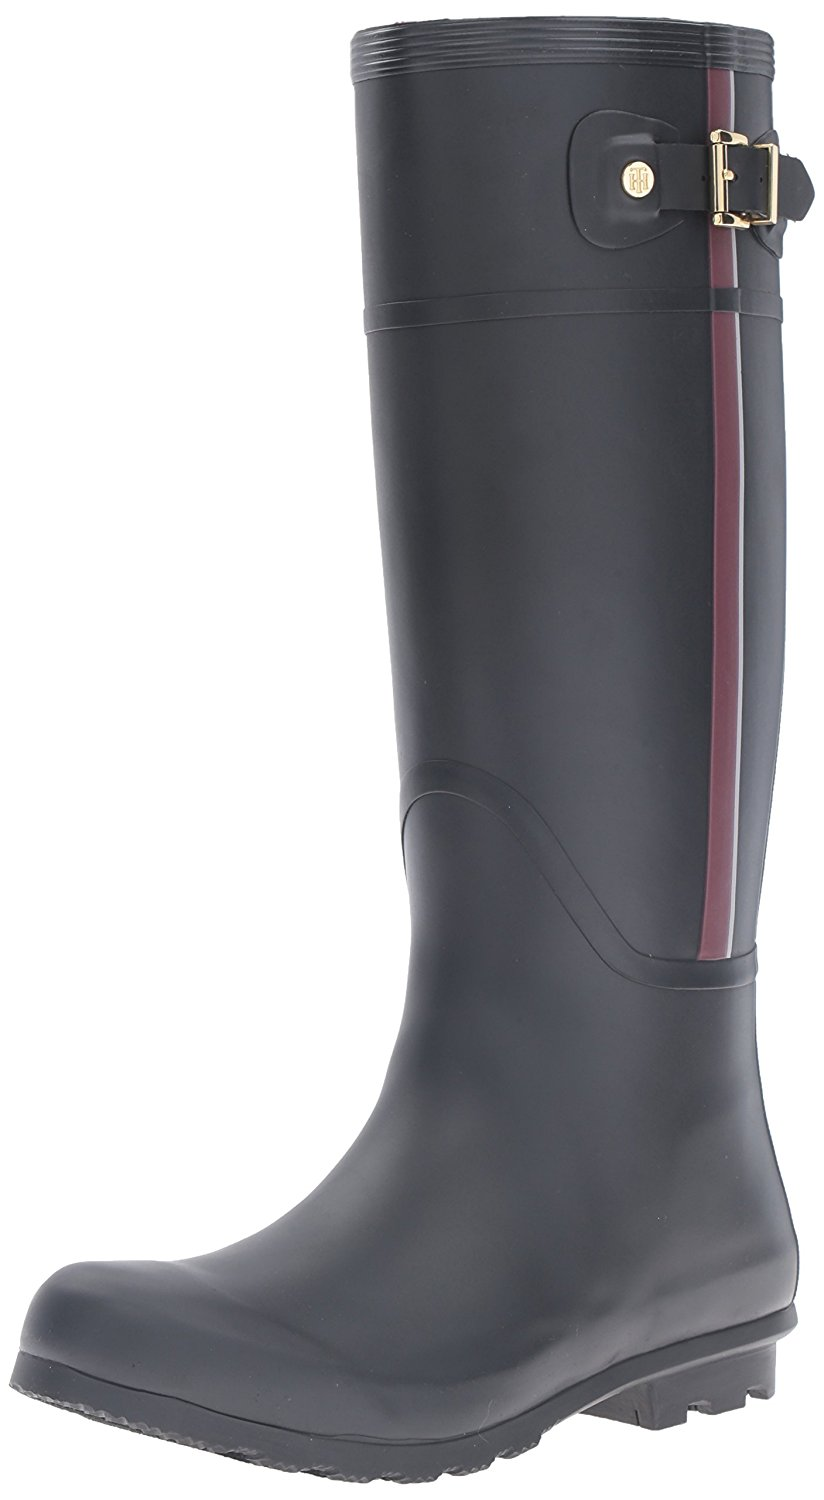 Amazon.com | Tommy Hilfiger Women's Malva Rain Boot, Black, 7 M US | Rain Footwear